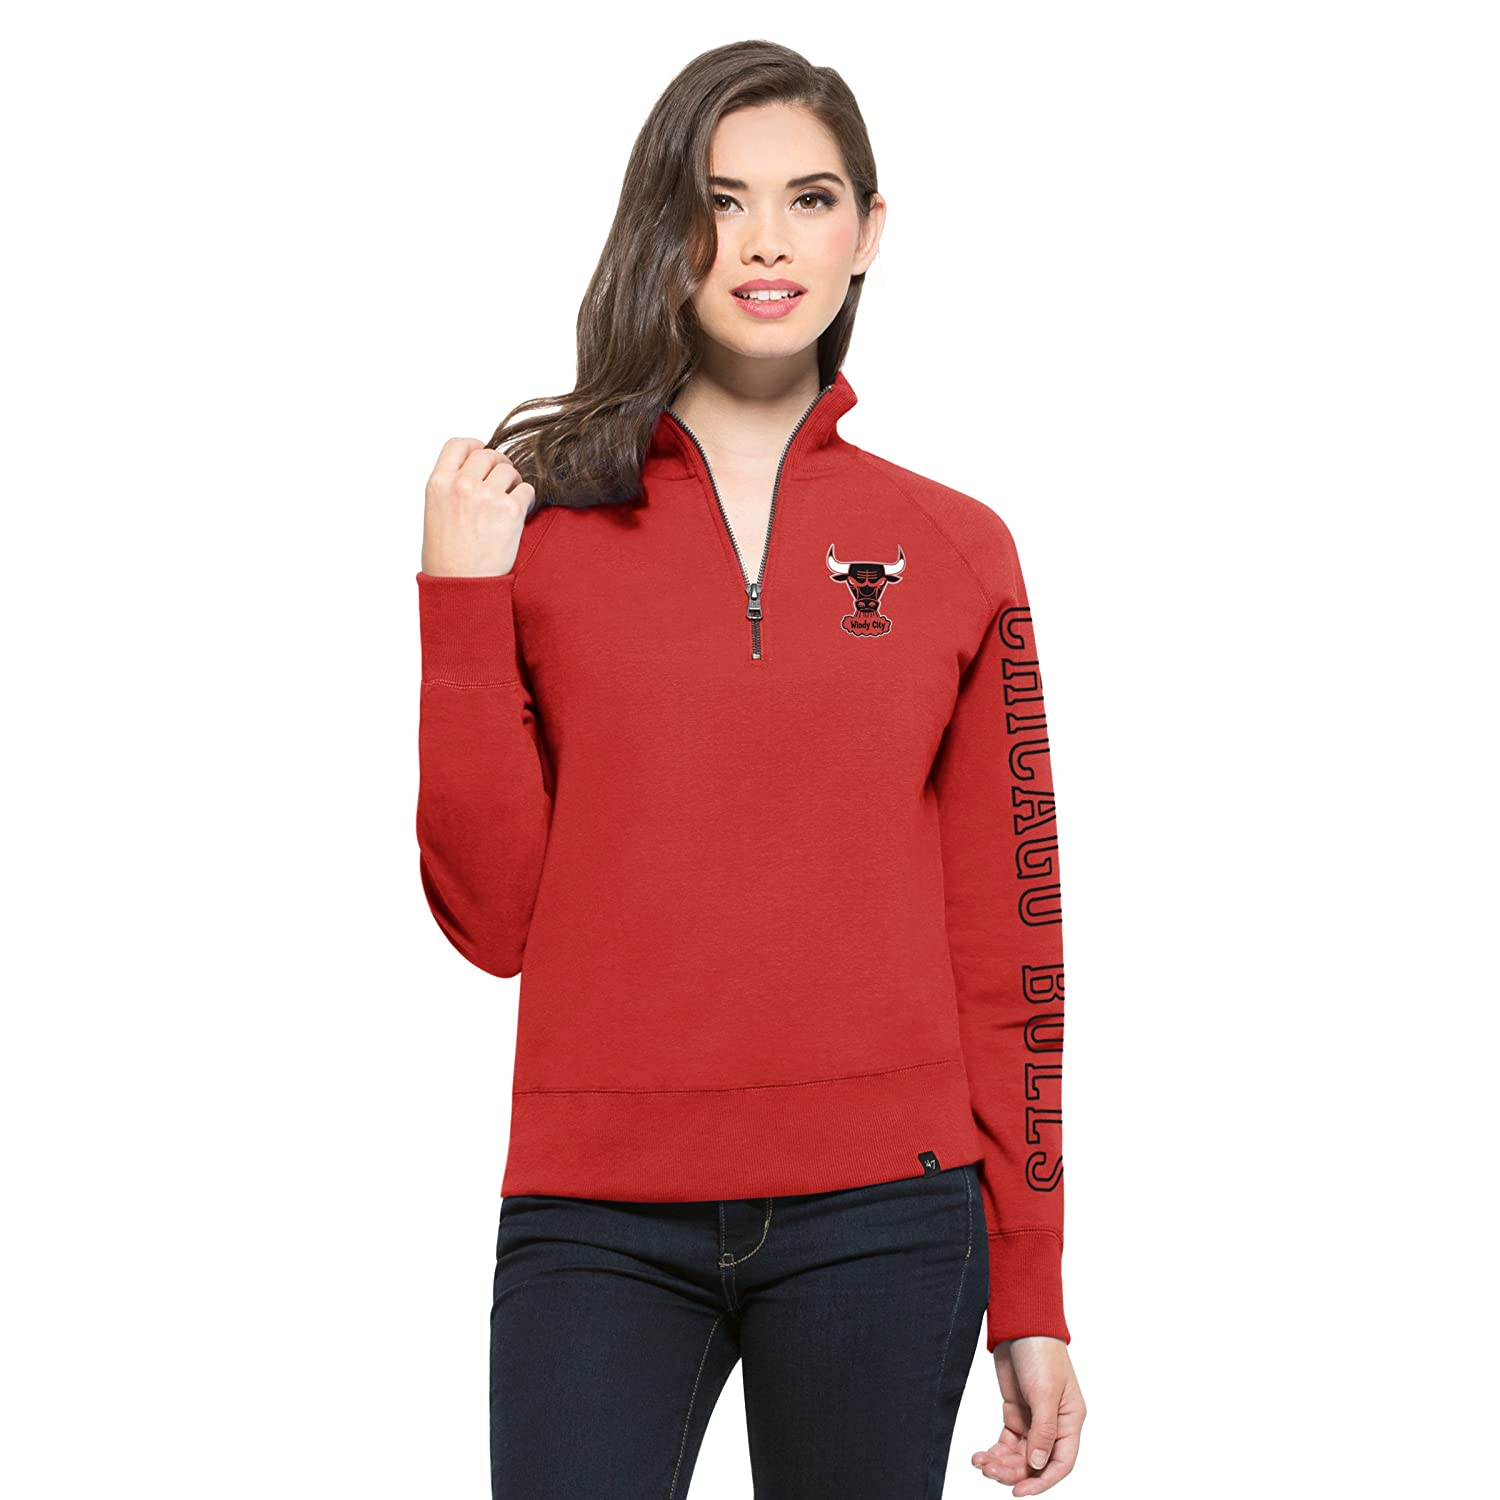 NBA Womens 47 Shimmer Cross-Check 1//4-Zip Fleece Pullover